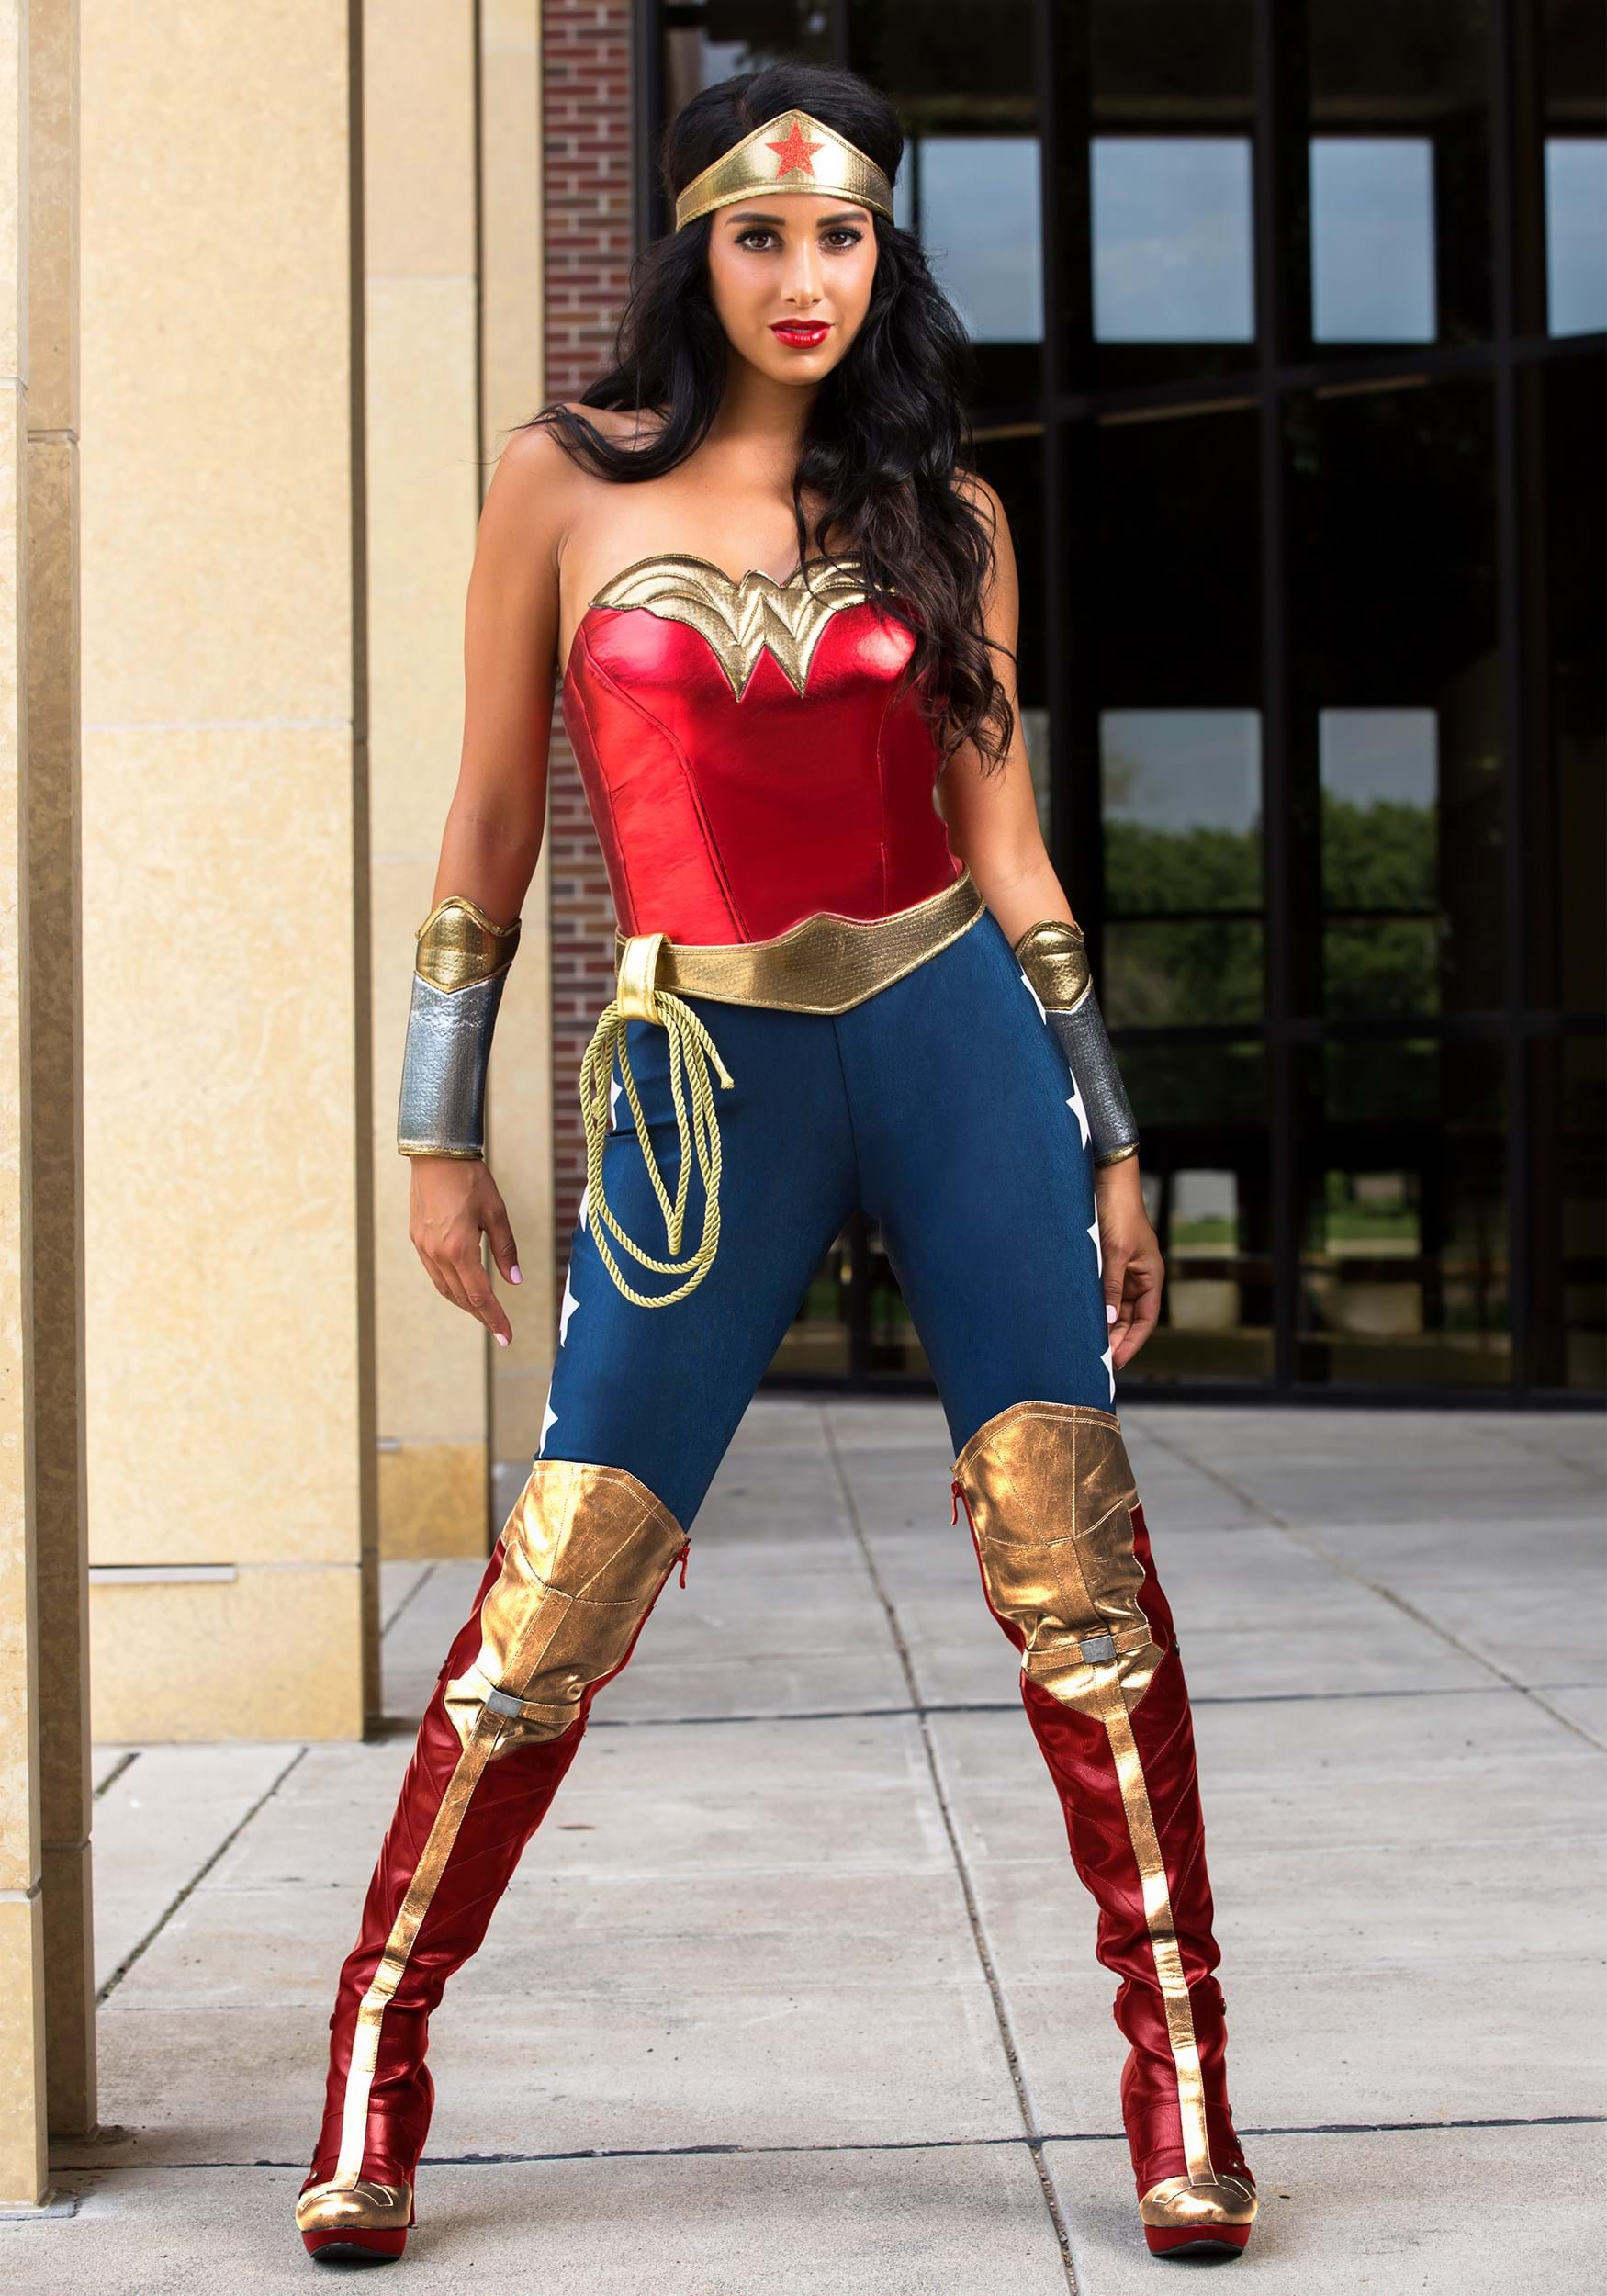 f6b8b67d33 Wonder Woman Costumes for Girls & Women